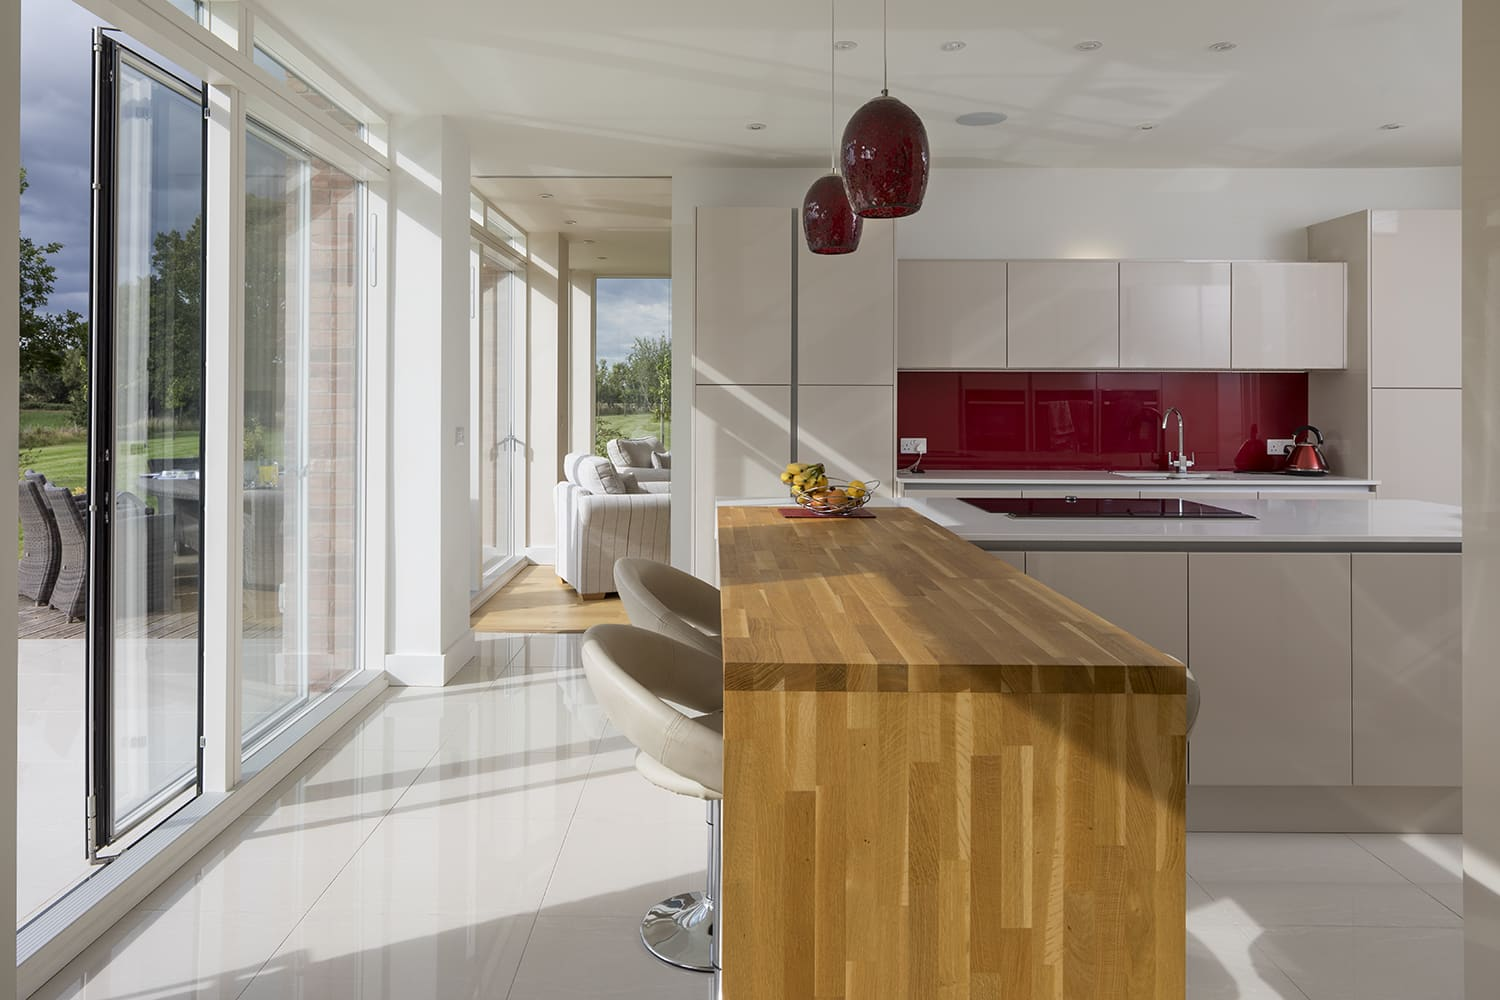 Sleek lines in modern kitchen with wood block breakfast bar, light filled from glazed wall on left hand side. The kitchen in the background is white with a red splash board.